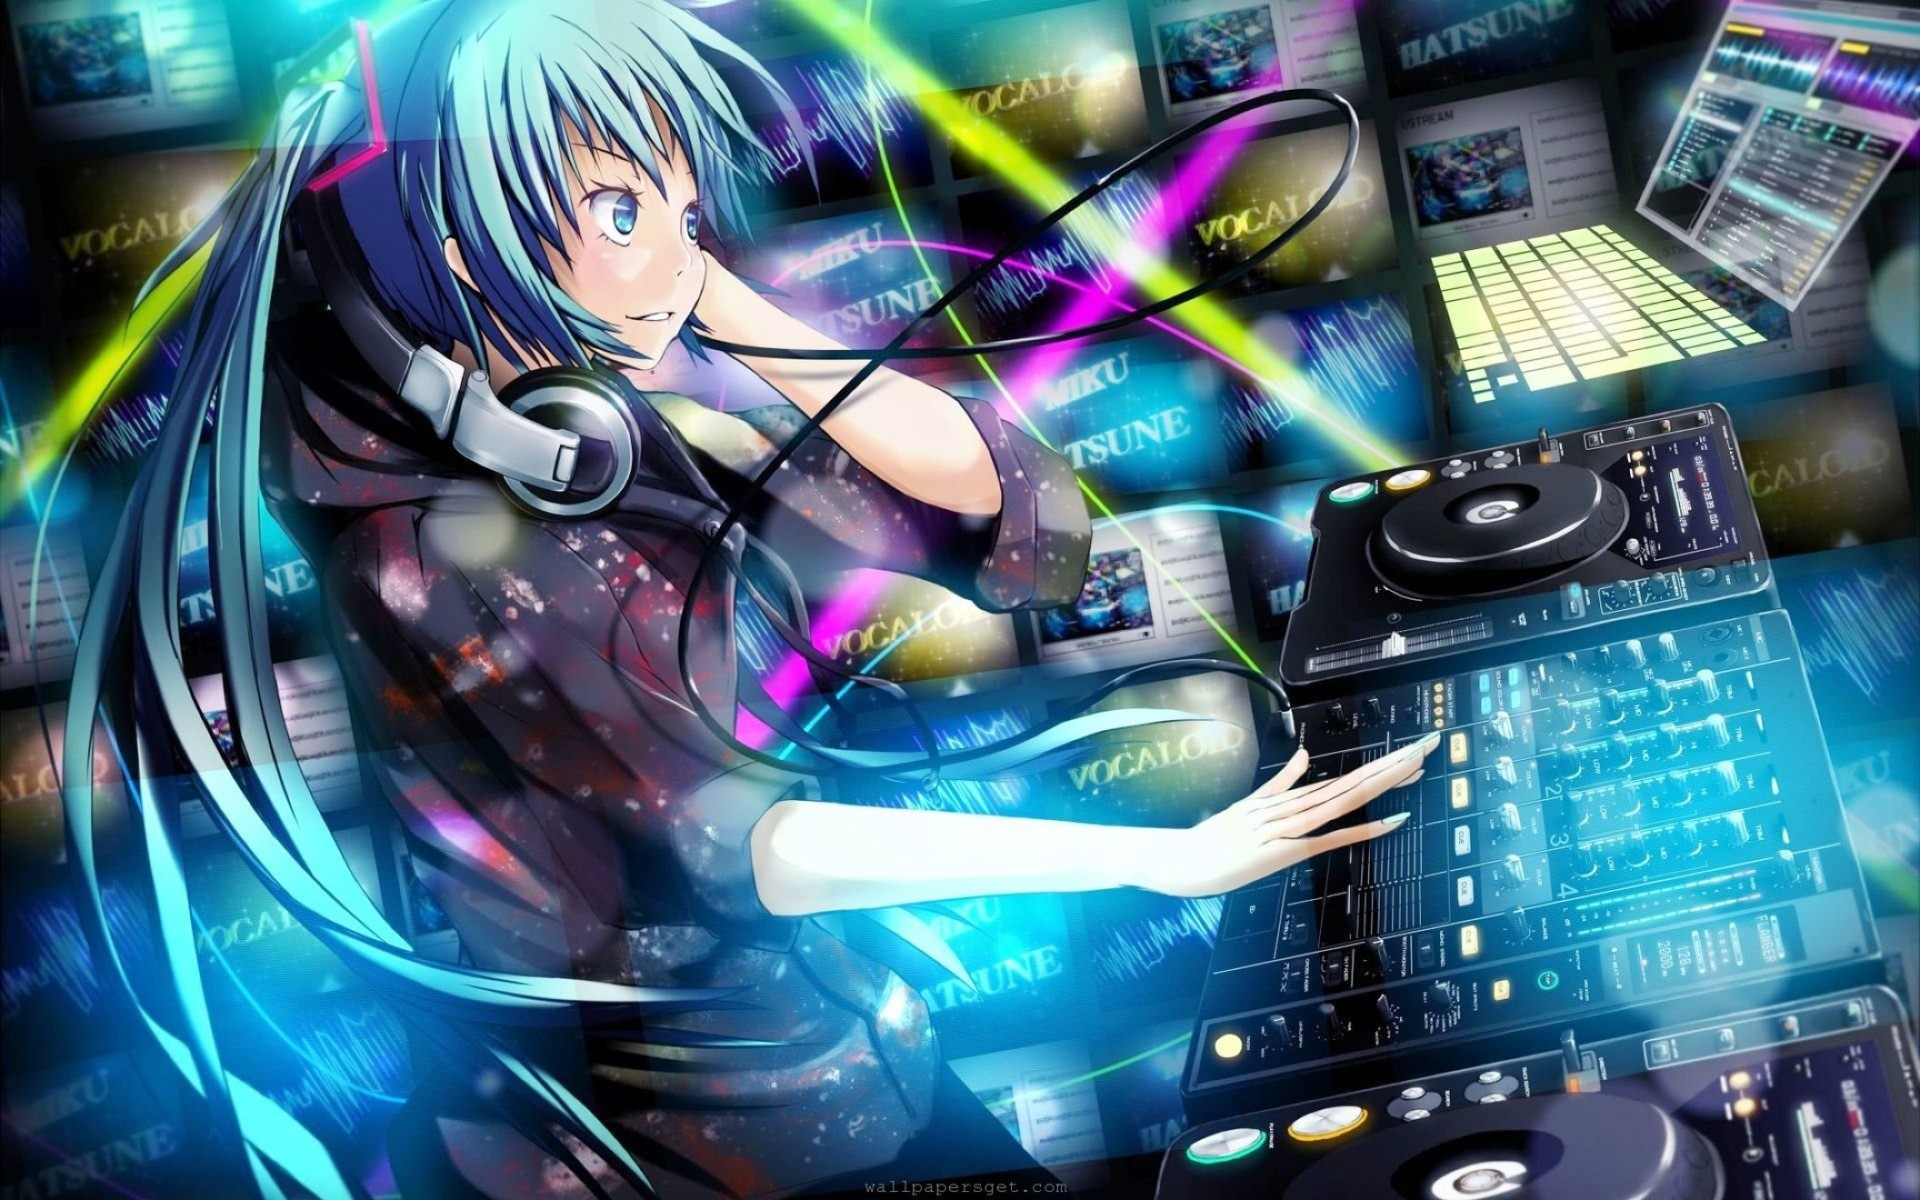 Anime Dj Music  Wallpaper